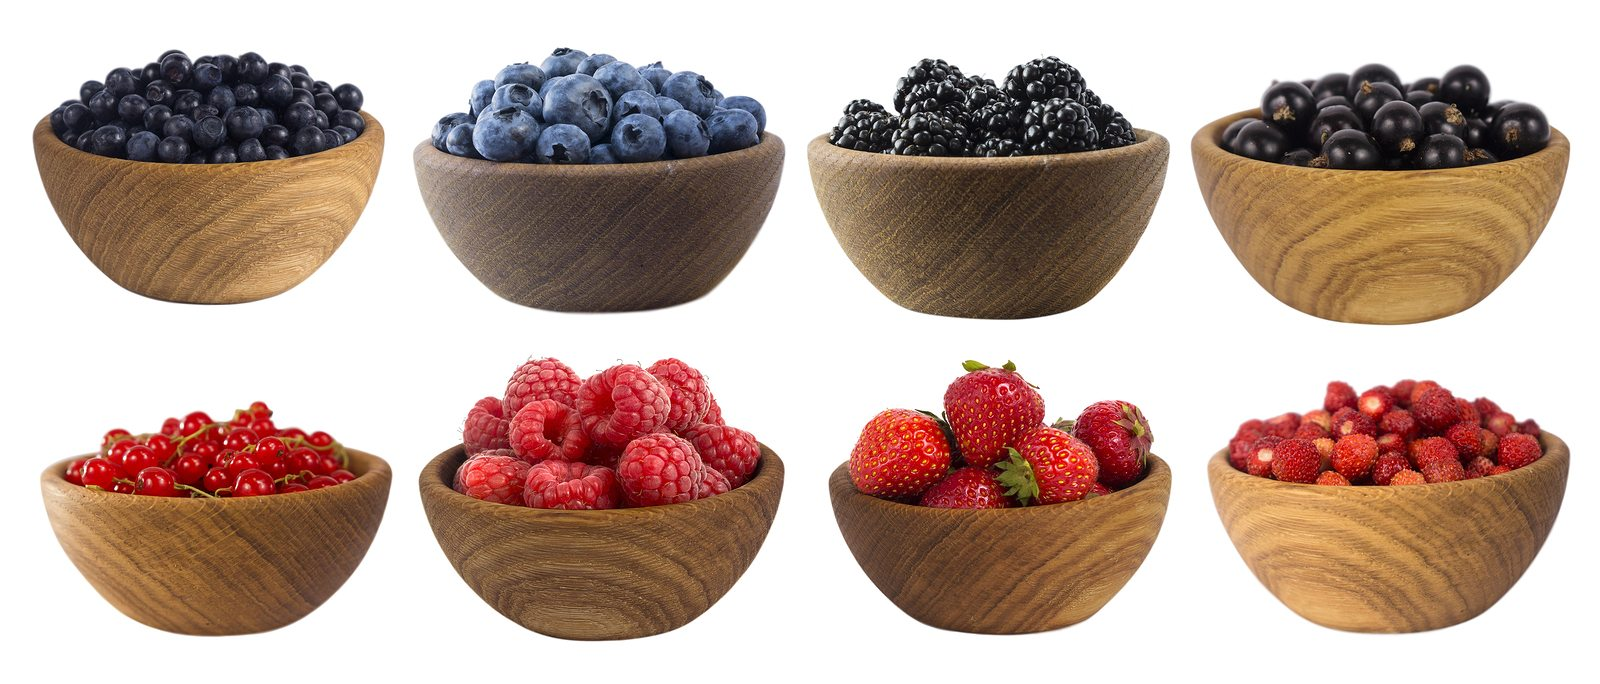 Blue-black and red berries isolated on white. Mulberry, blueberry, black berry, currant, strawberry and raspberry. Collage of different fruits and berries. Berry on a white background. Sweet and juicy berry with copy space for text.